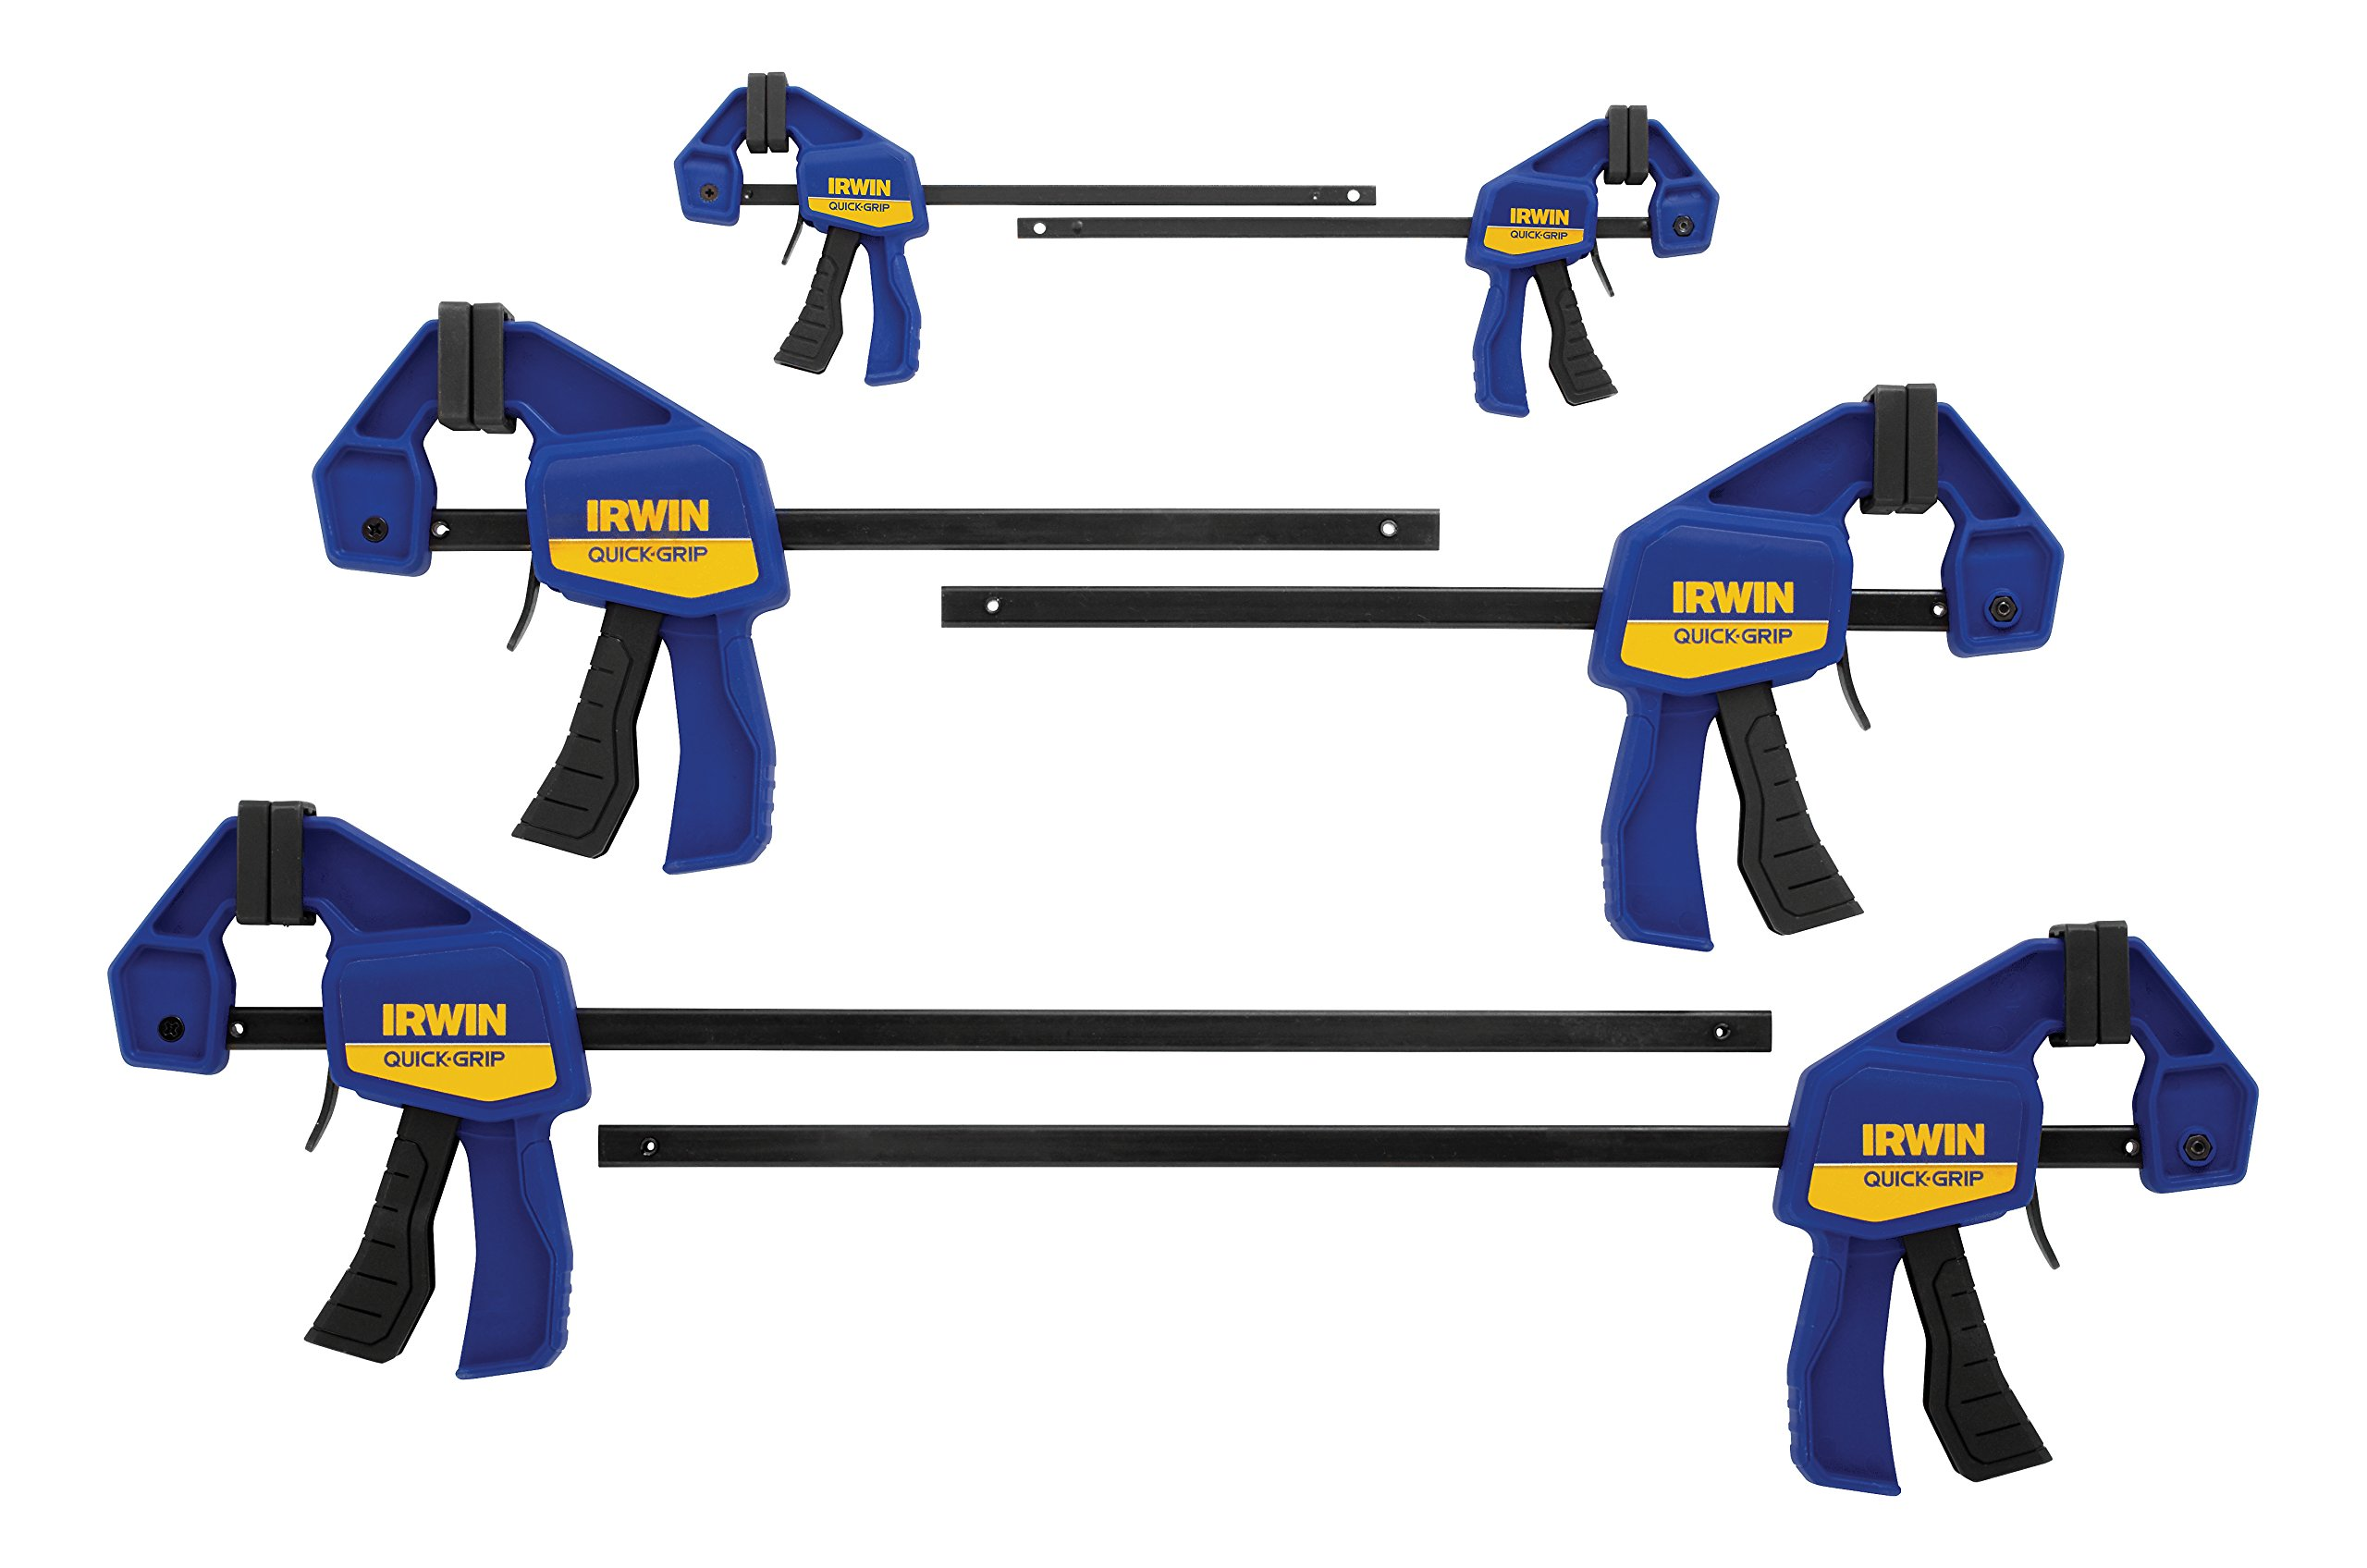 IRWINQUICK-GRIPOne-Handed Mini Bar Clamp 6 Pack, (2) 4-1/4'', (2) 6'', (2) 12'', 1964749